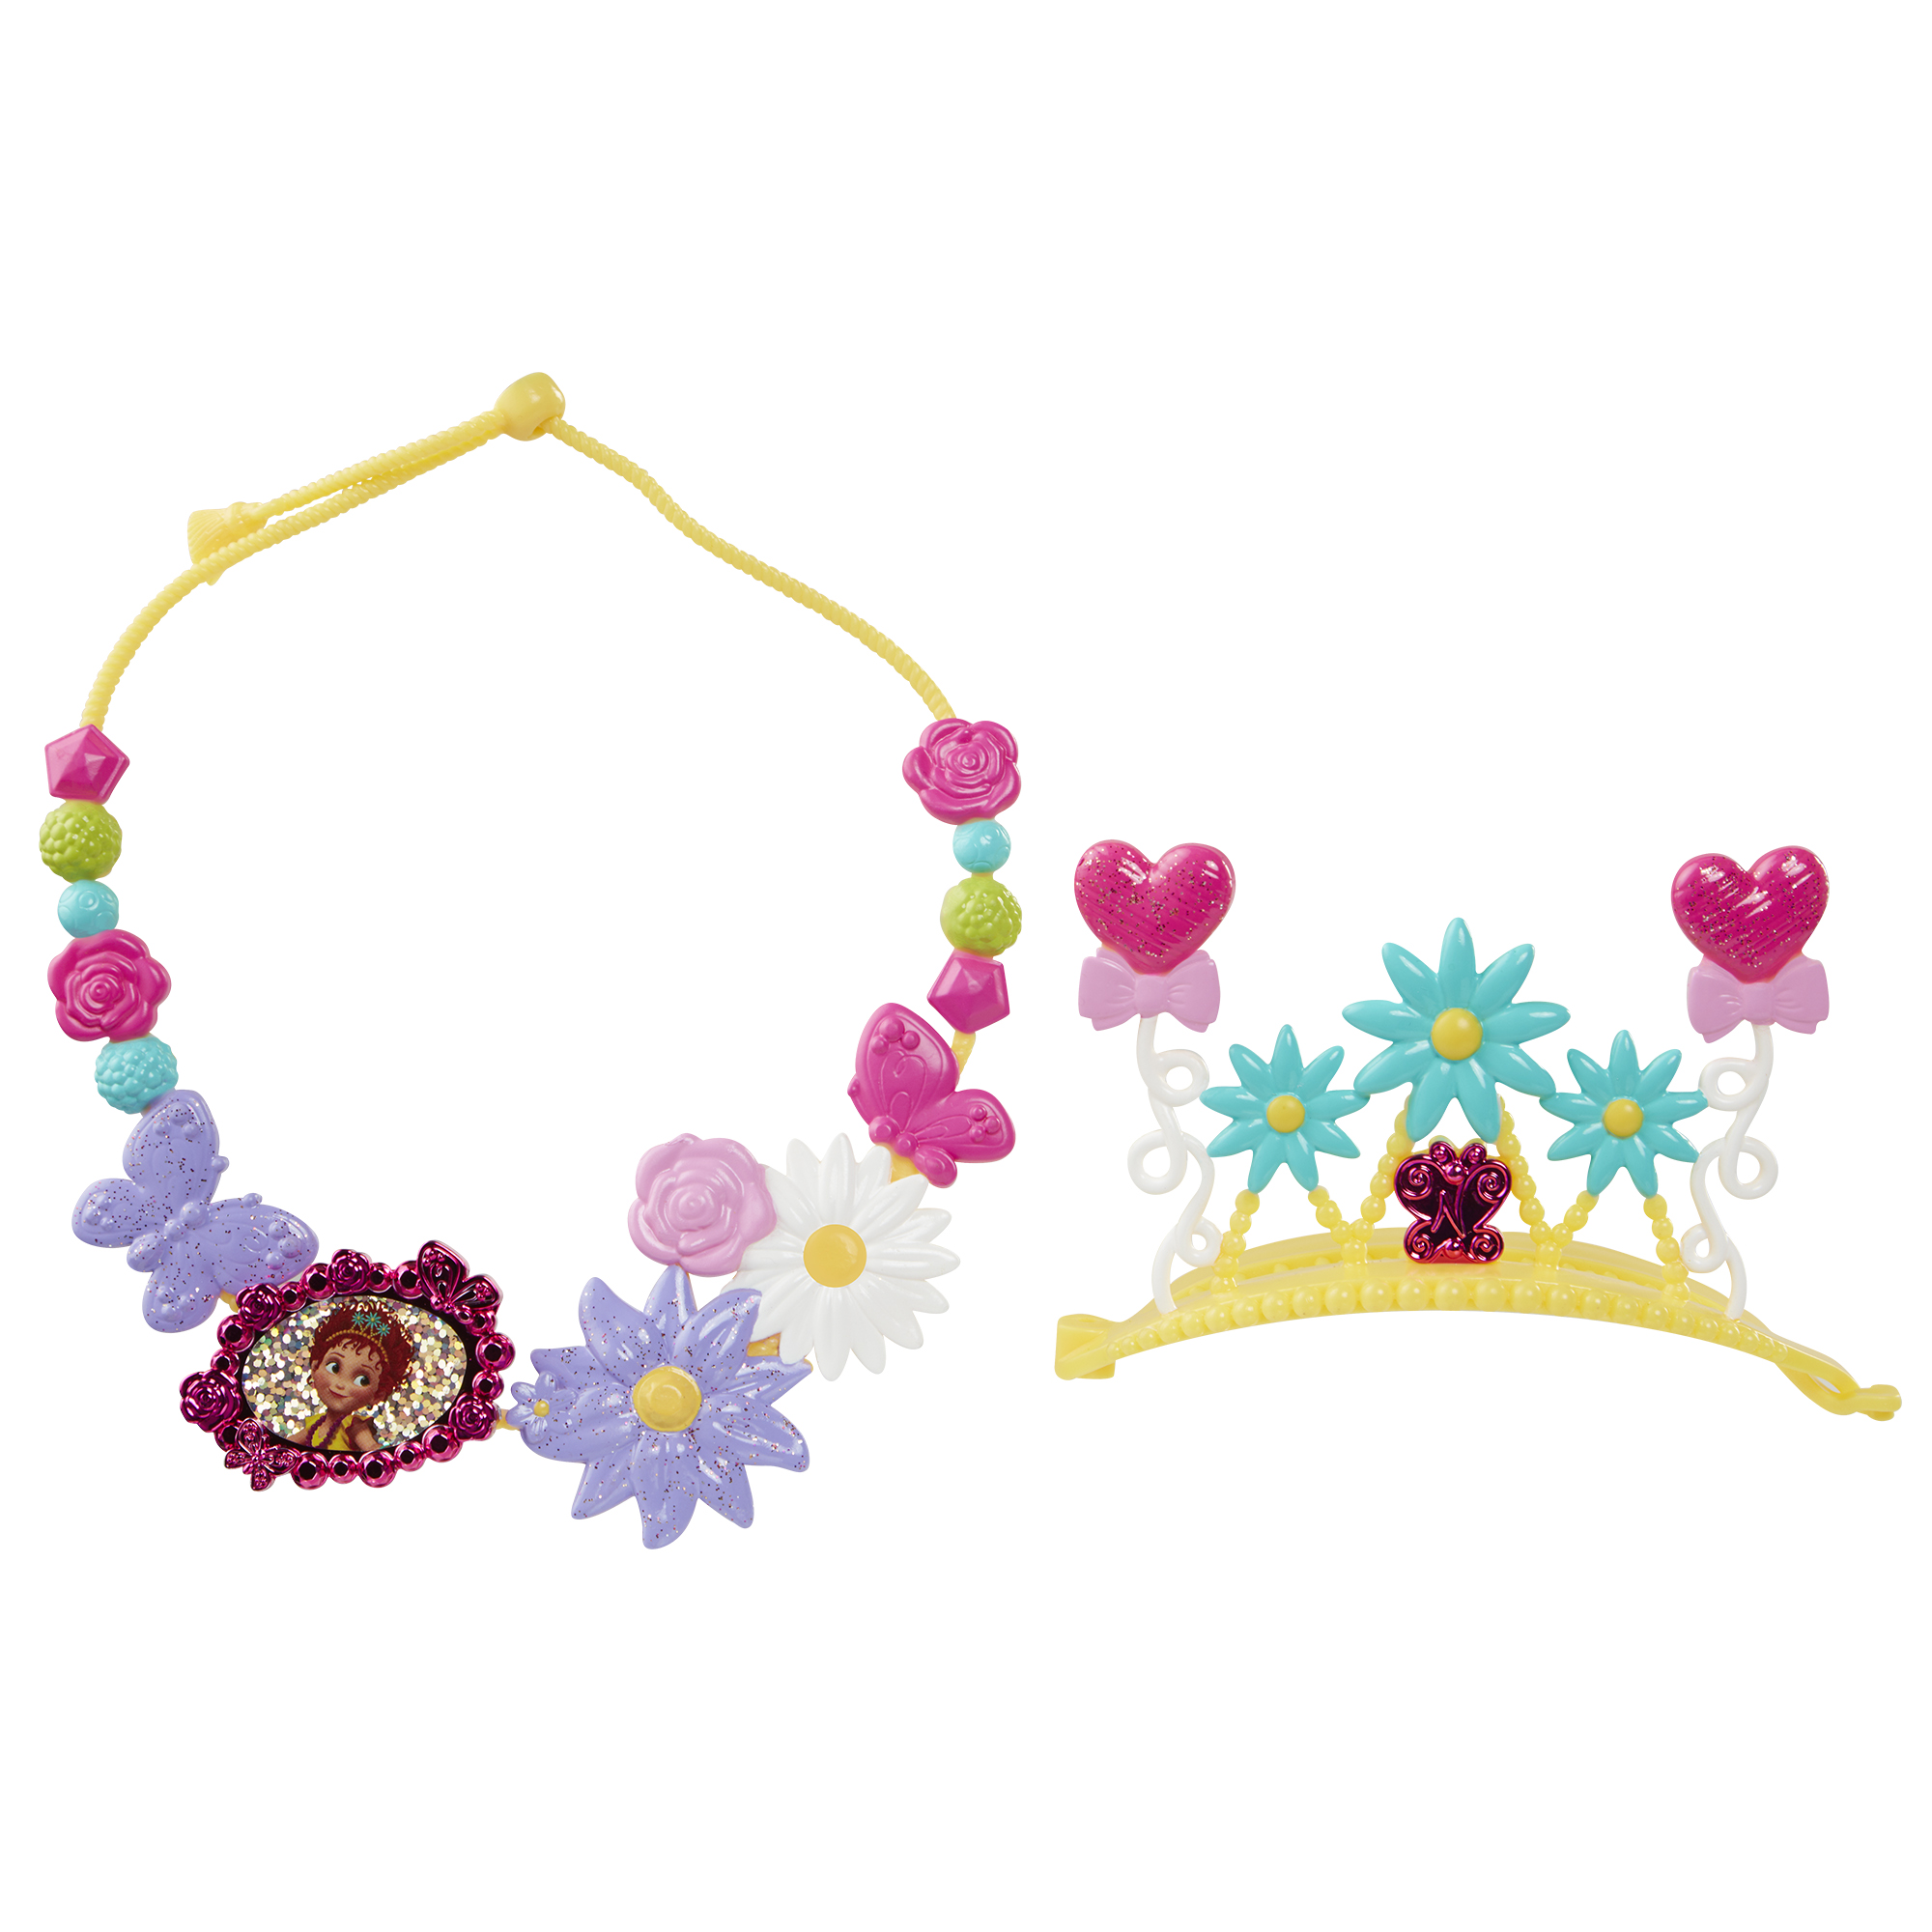 Fancy Tiara and Necklace Set Disney